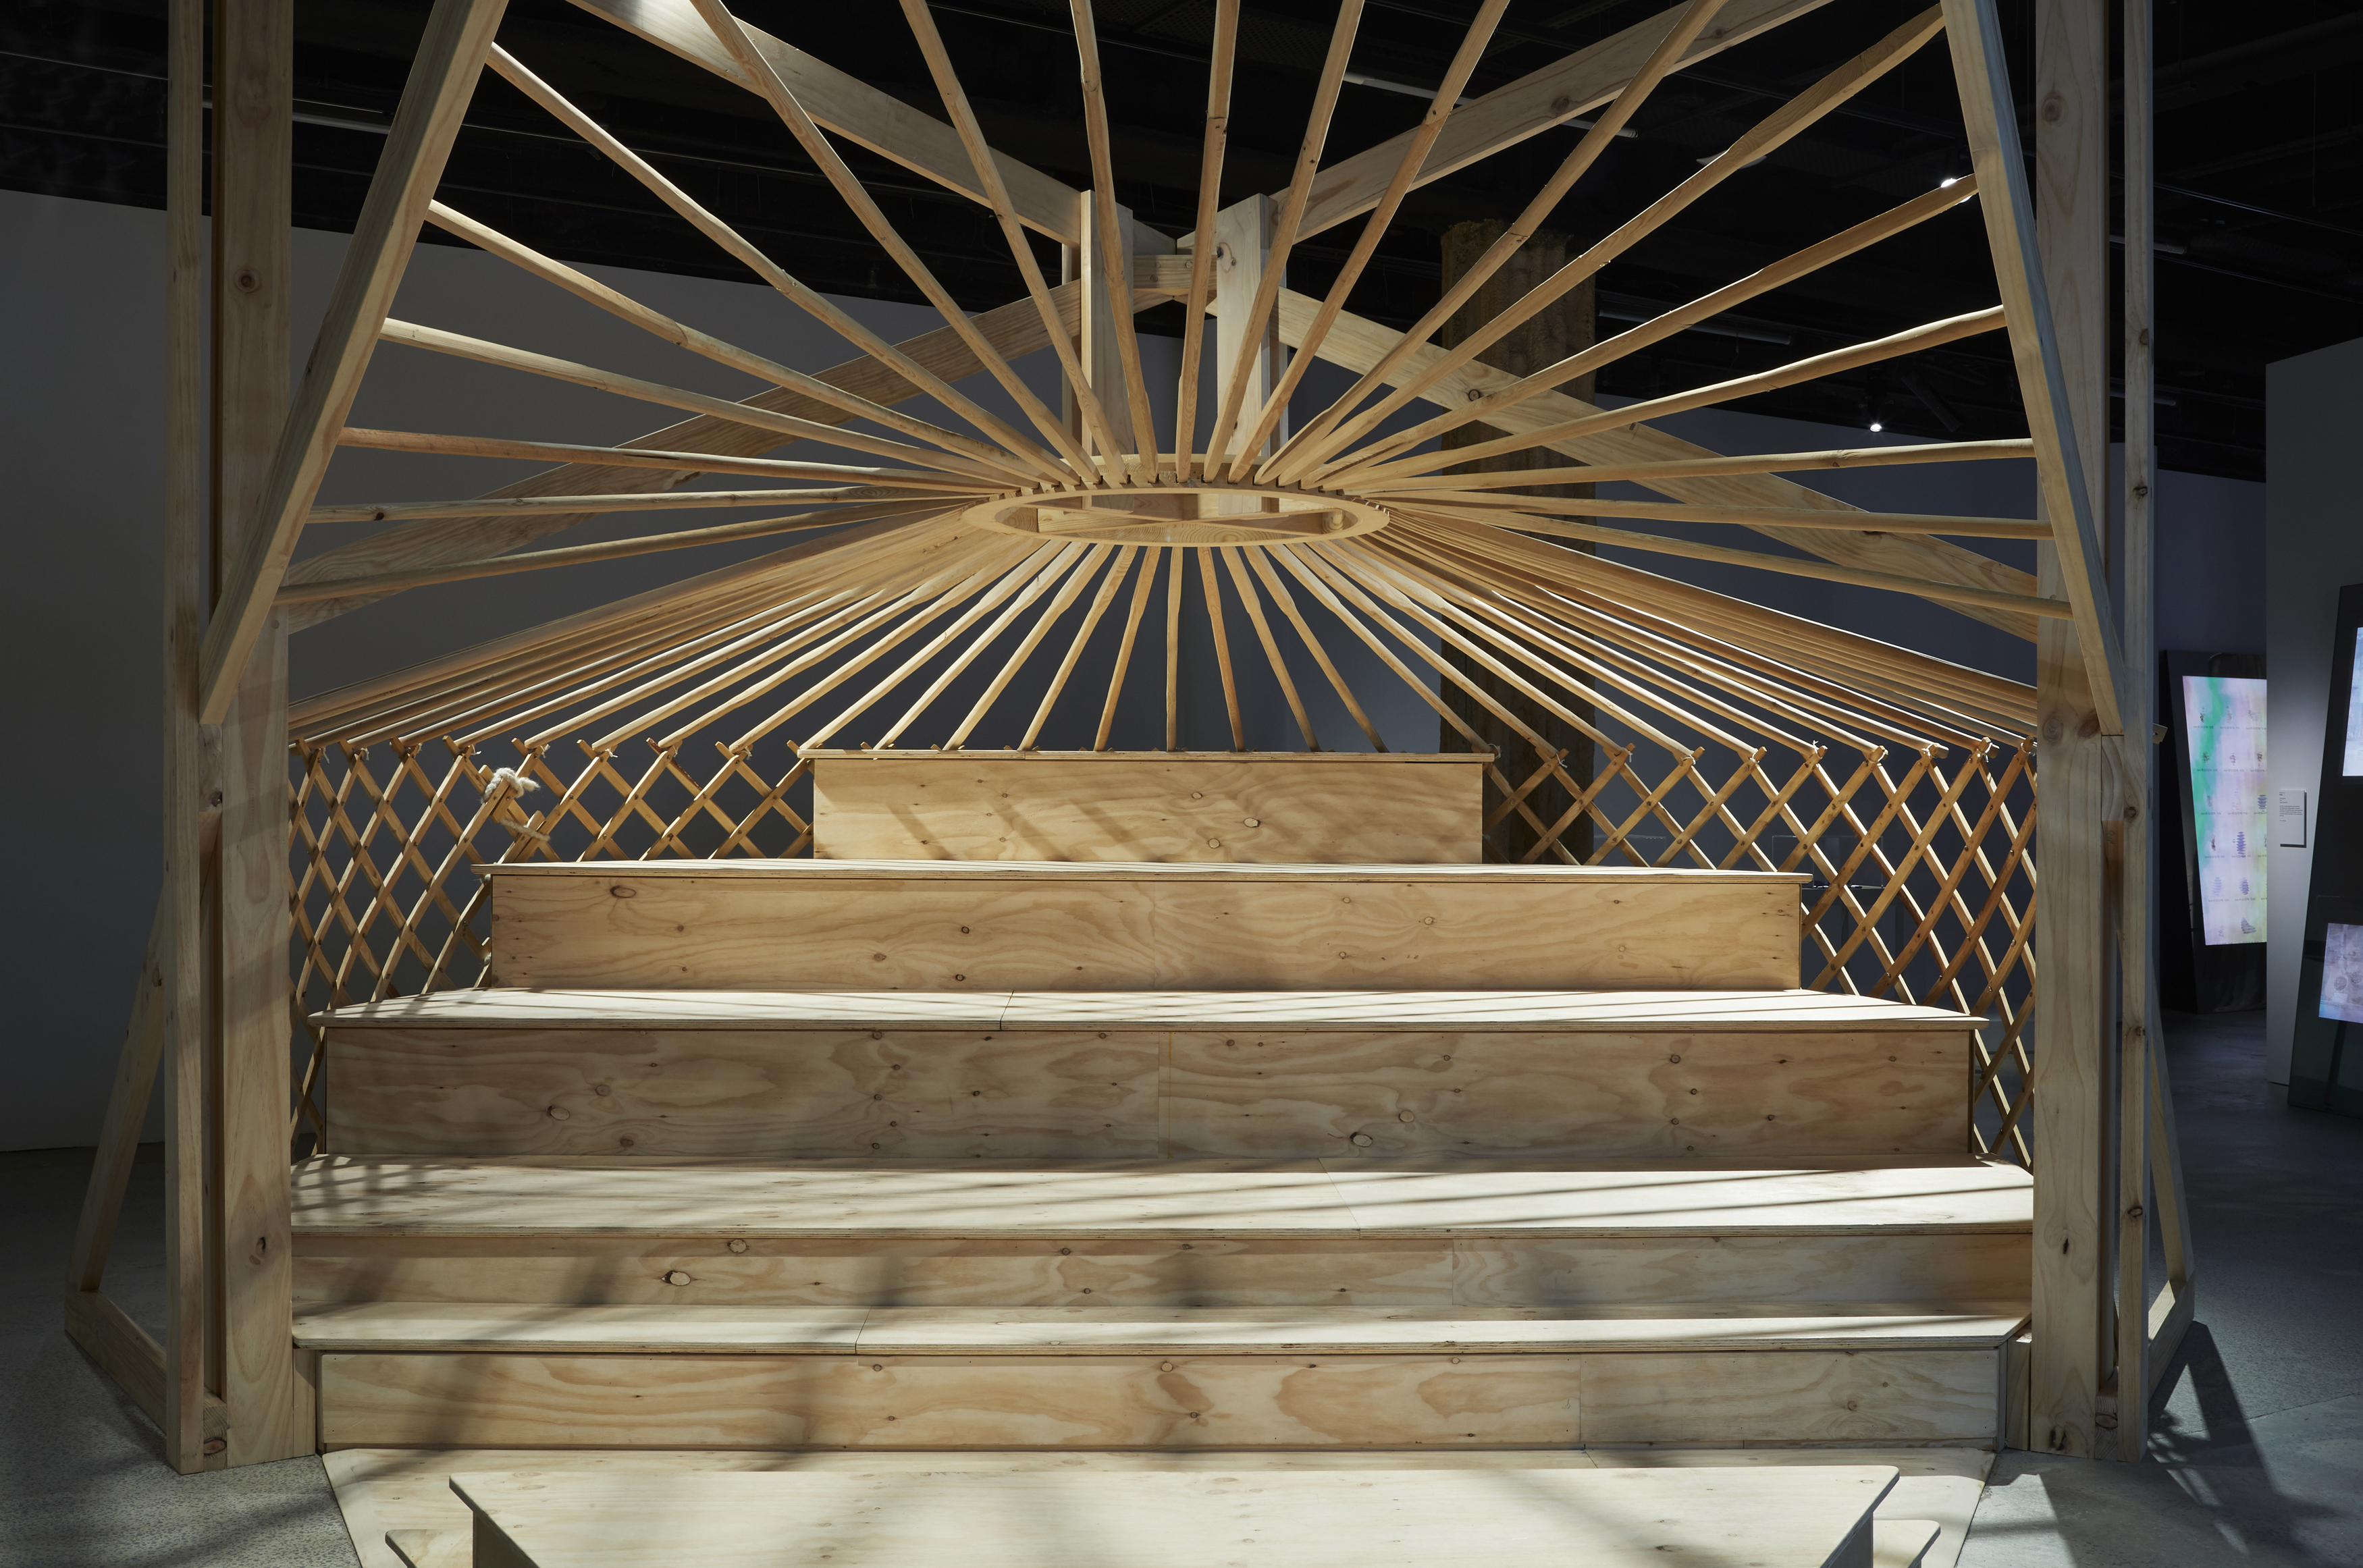 A five tiered wooden seating area with a latticed wooden framework behind and a central heating exhaust at the apex from which wooden beams connect to the latticed walls.